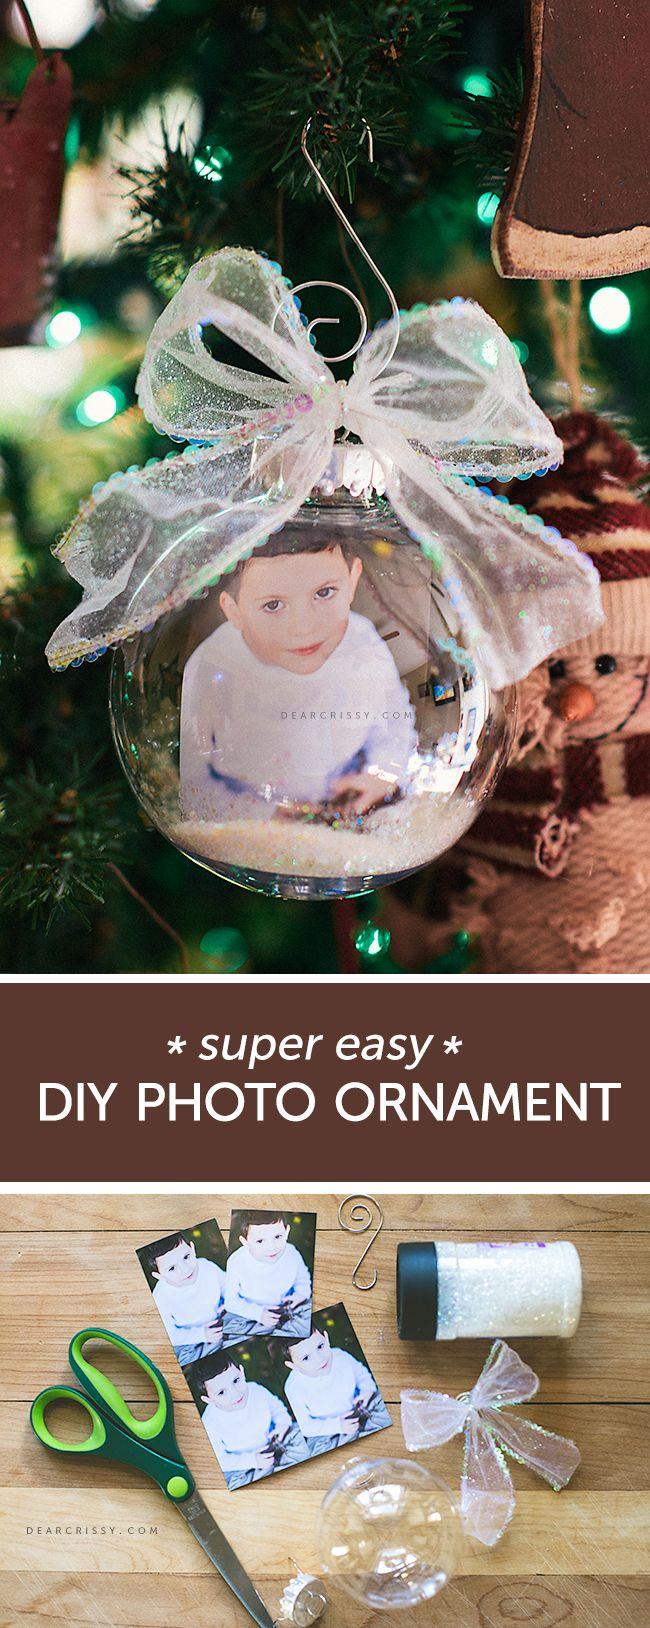 DIY Christmas Photo Ornament - a fun and easy way to preserve precious images!